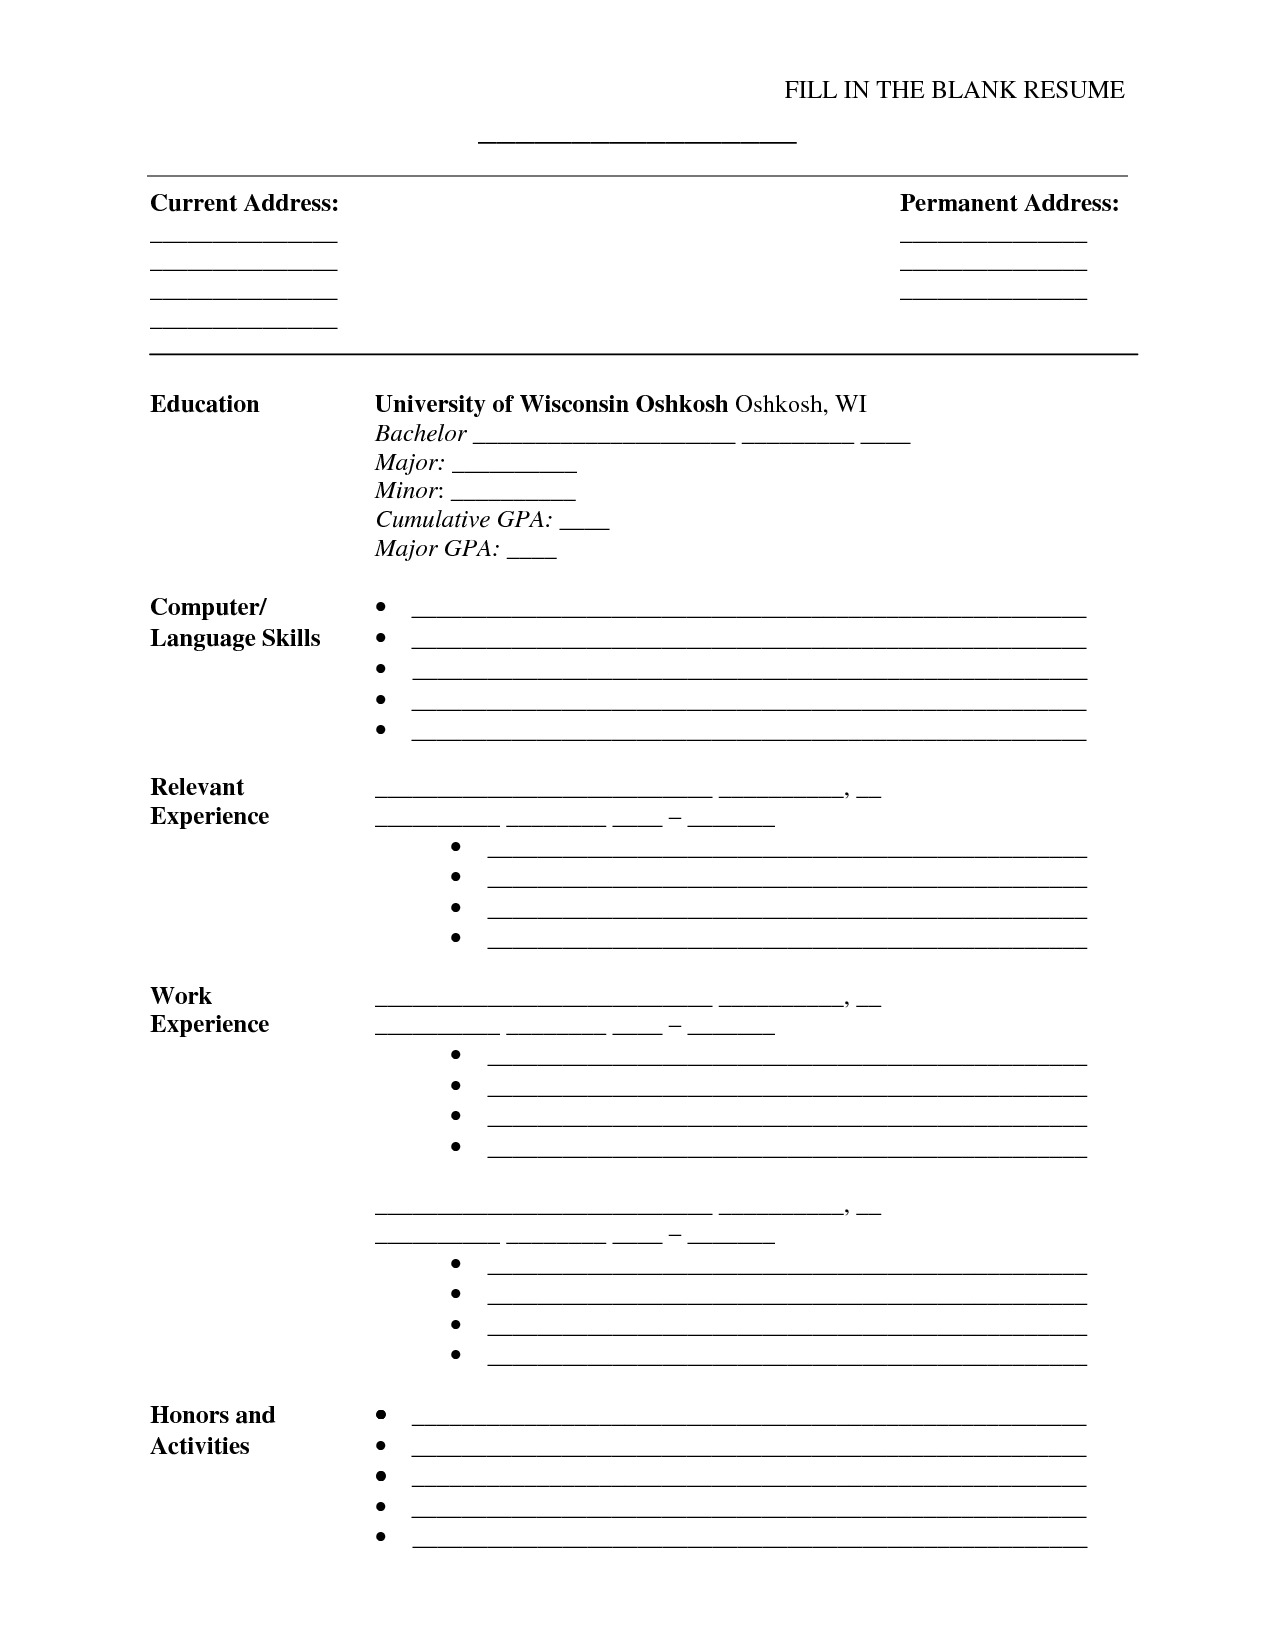 Quality Control Auditor Sample Resume Resume : Summary Of Qualification In Resume  Cv Layouts Free Resume .  Free Sample Resume Builder